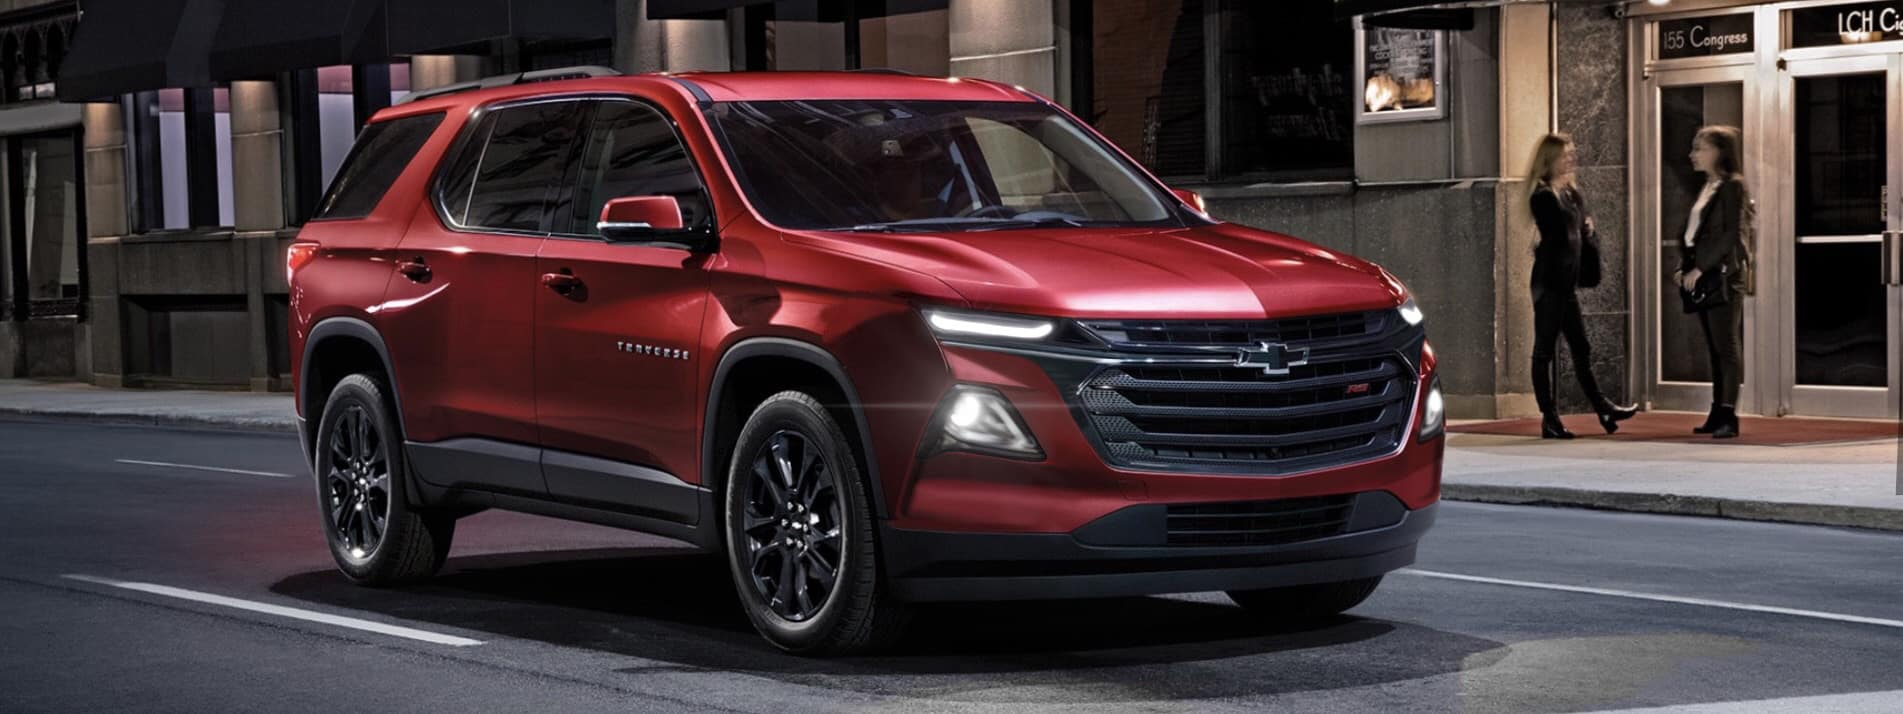 2021 Chevrolet Traverse at Victory Chevrolet of Savannah